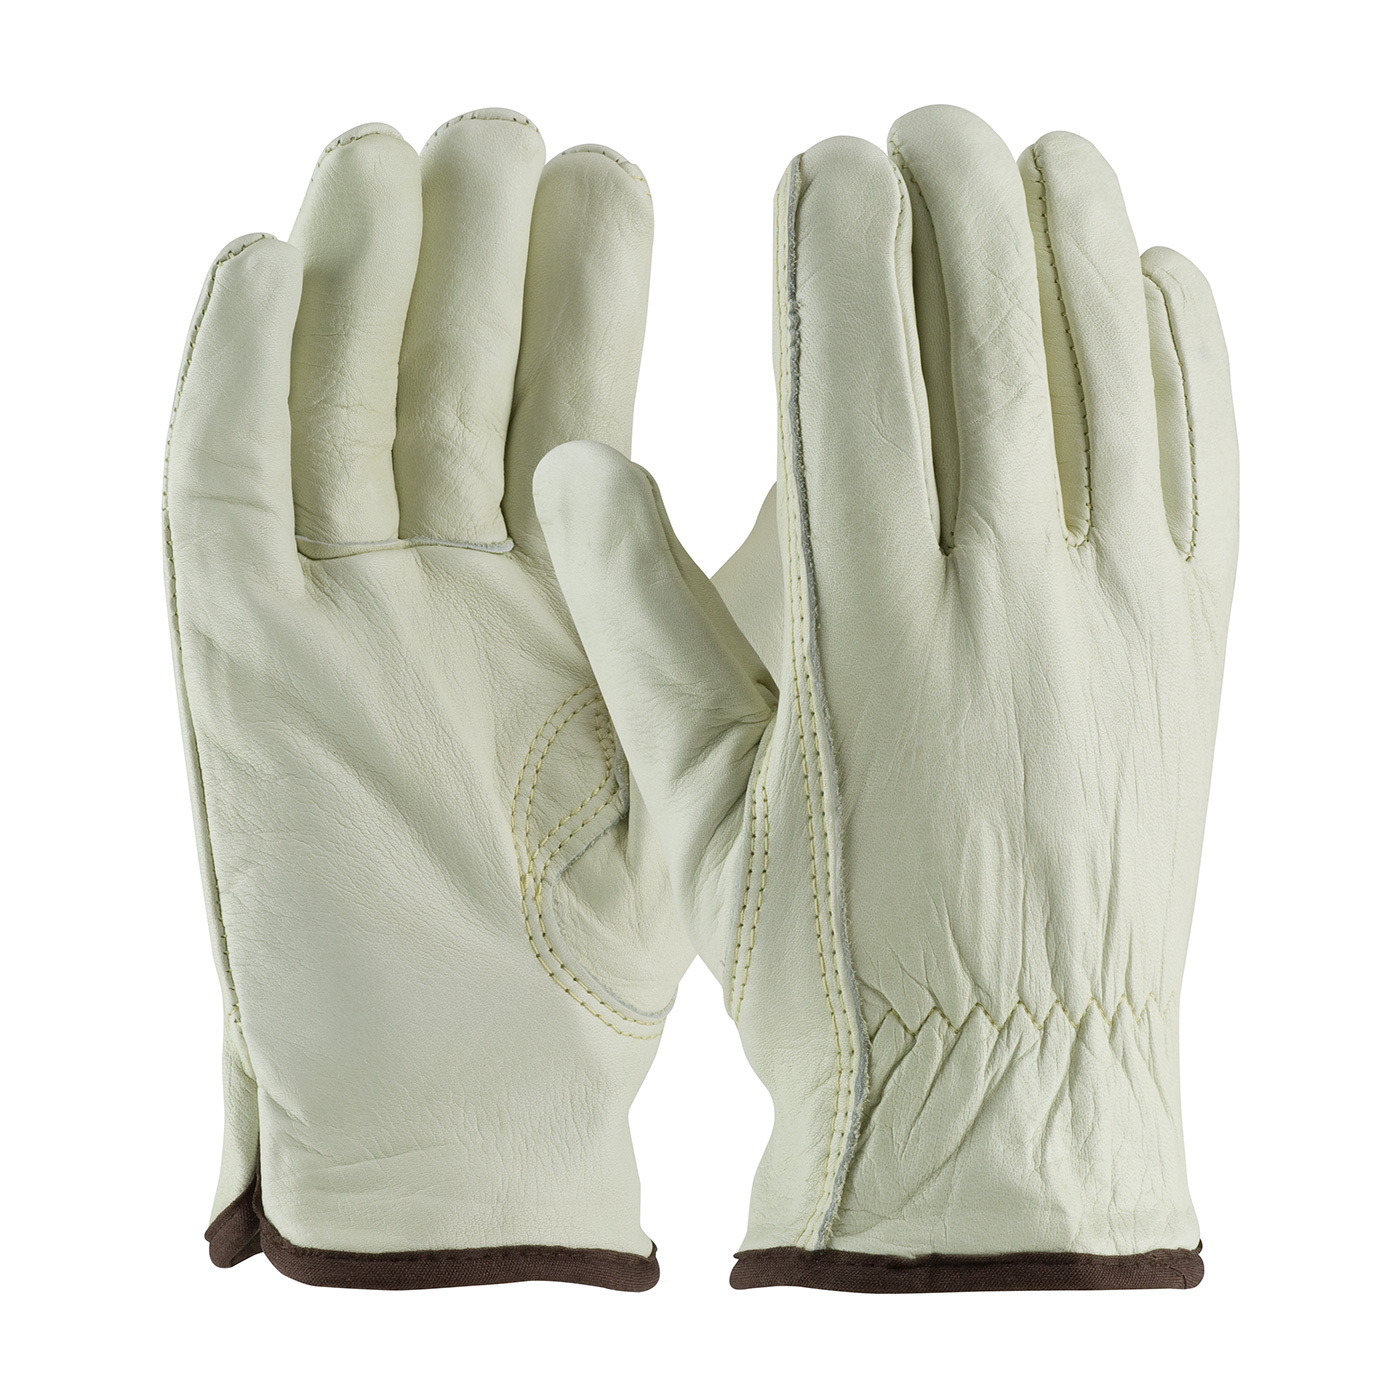 PIP® Top Grain Cowhide Leather Glove with Red Thermal Lining - Keystone Thumb #77-268